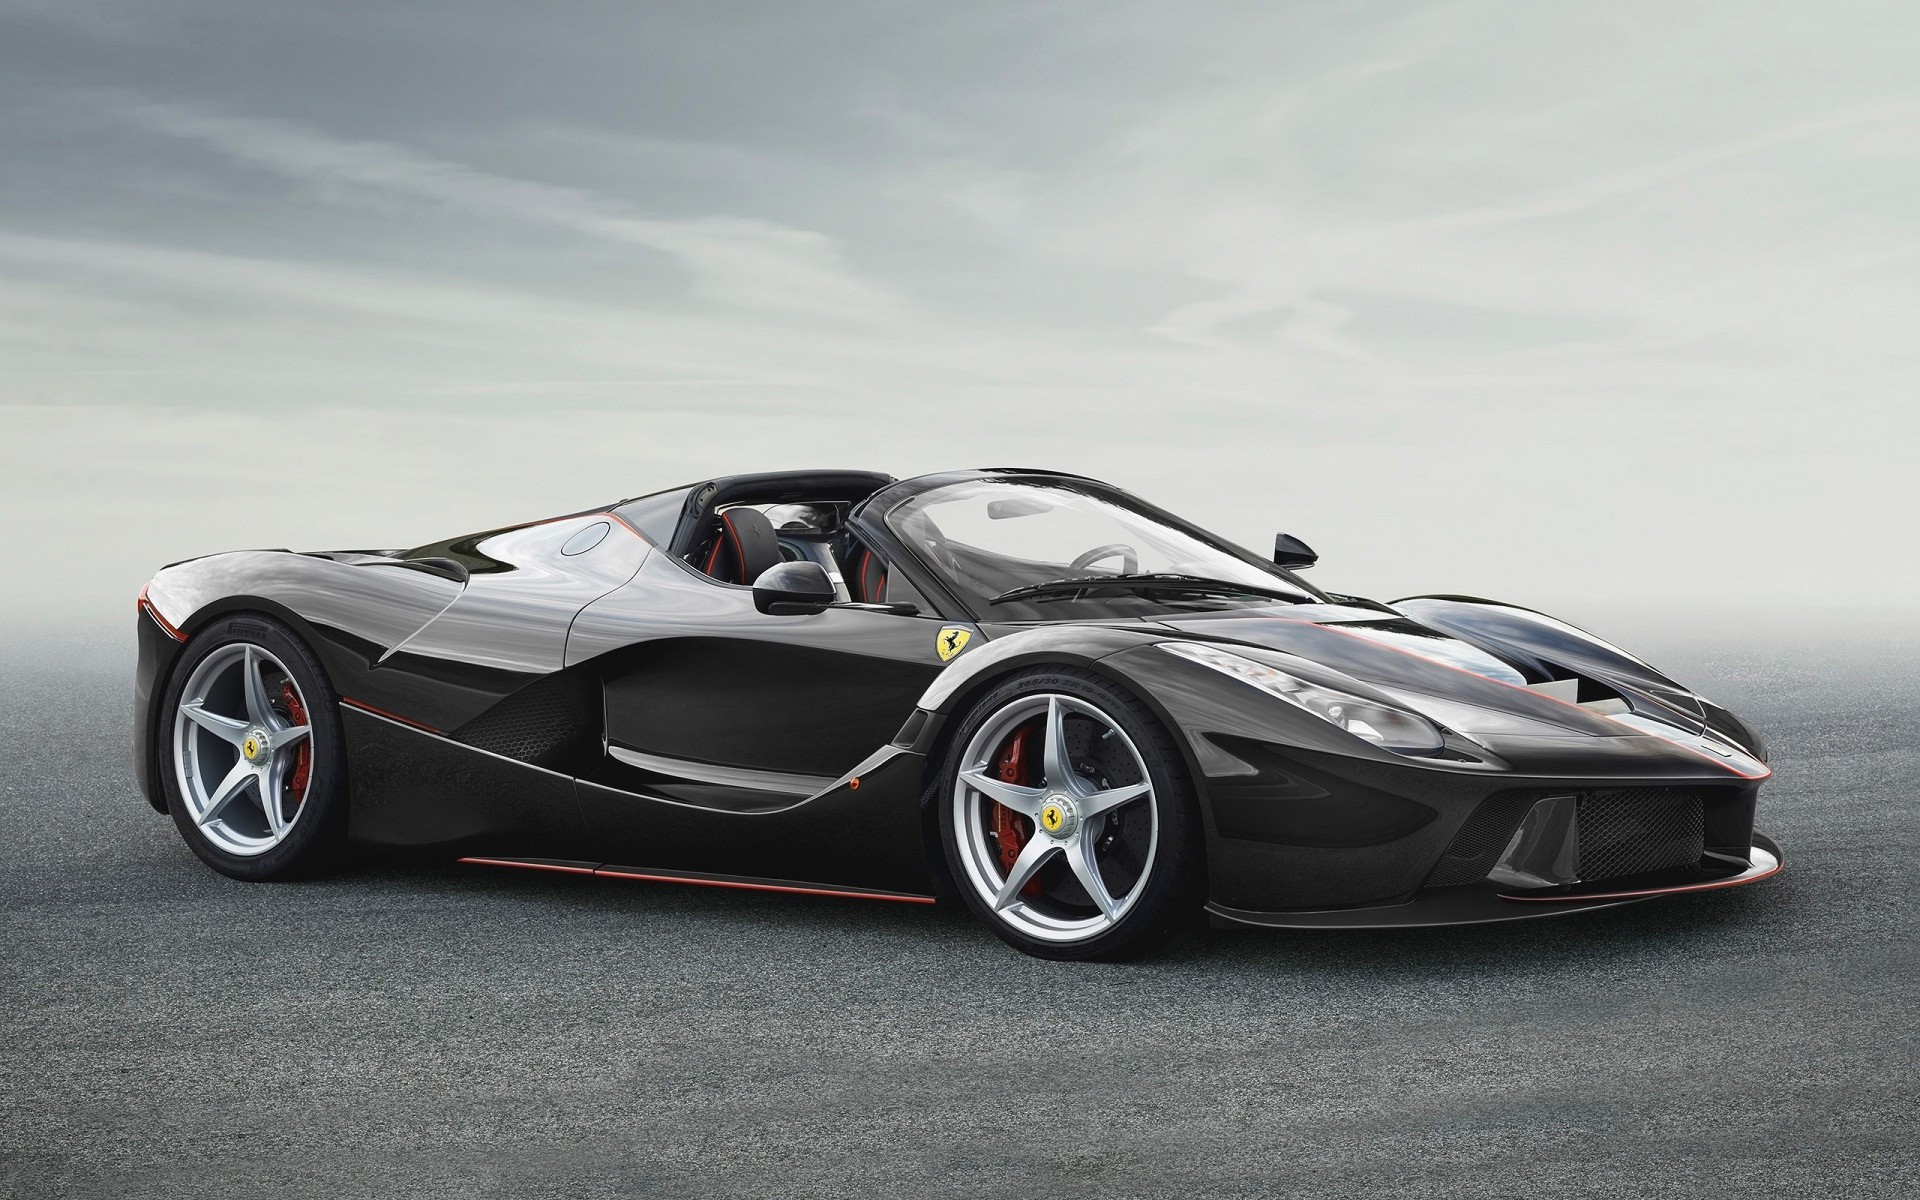 Res: 1920x1200, Ferrari Enzo Car Wallpapers e of The Most Expensive Cars in